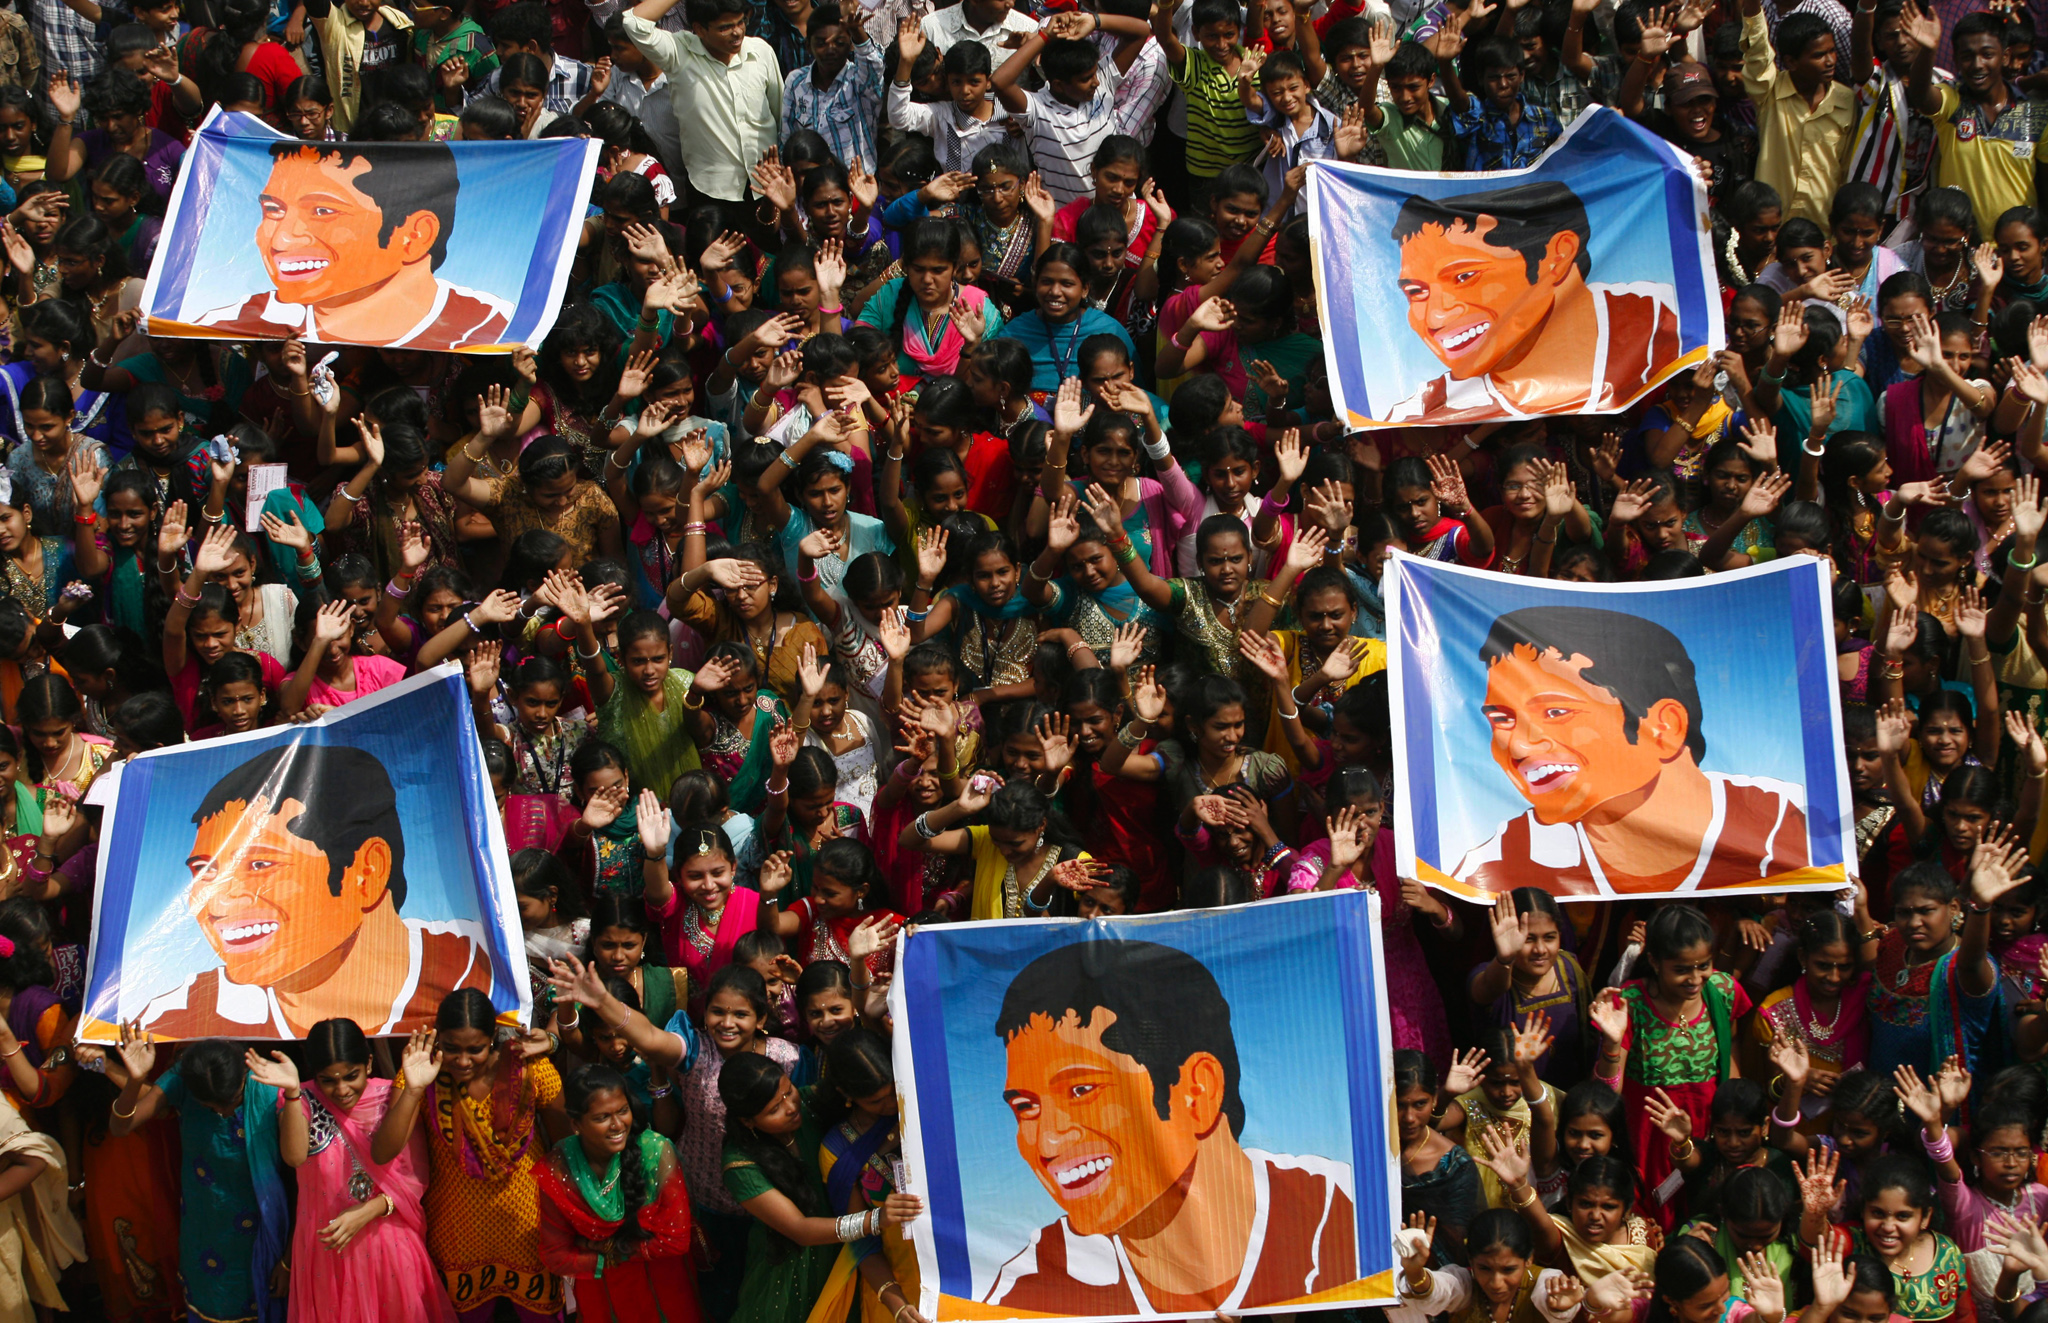 Indian school children display posters of Indian cricket star Sachin Tendulkar as they gather to honor him in Chennai, India. Tendulkar plays his world-record 200th and last test from Thursday in a hometown stadium for which tickets could have been sold 10 times over.